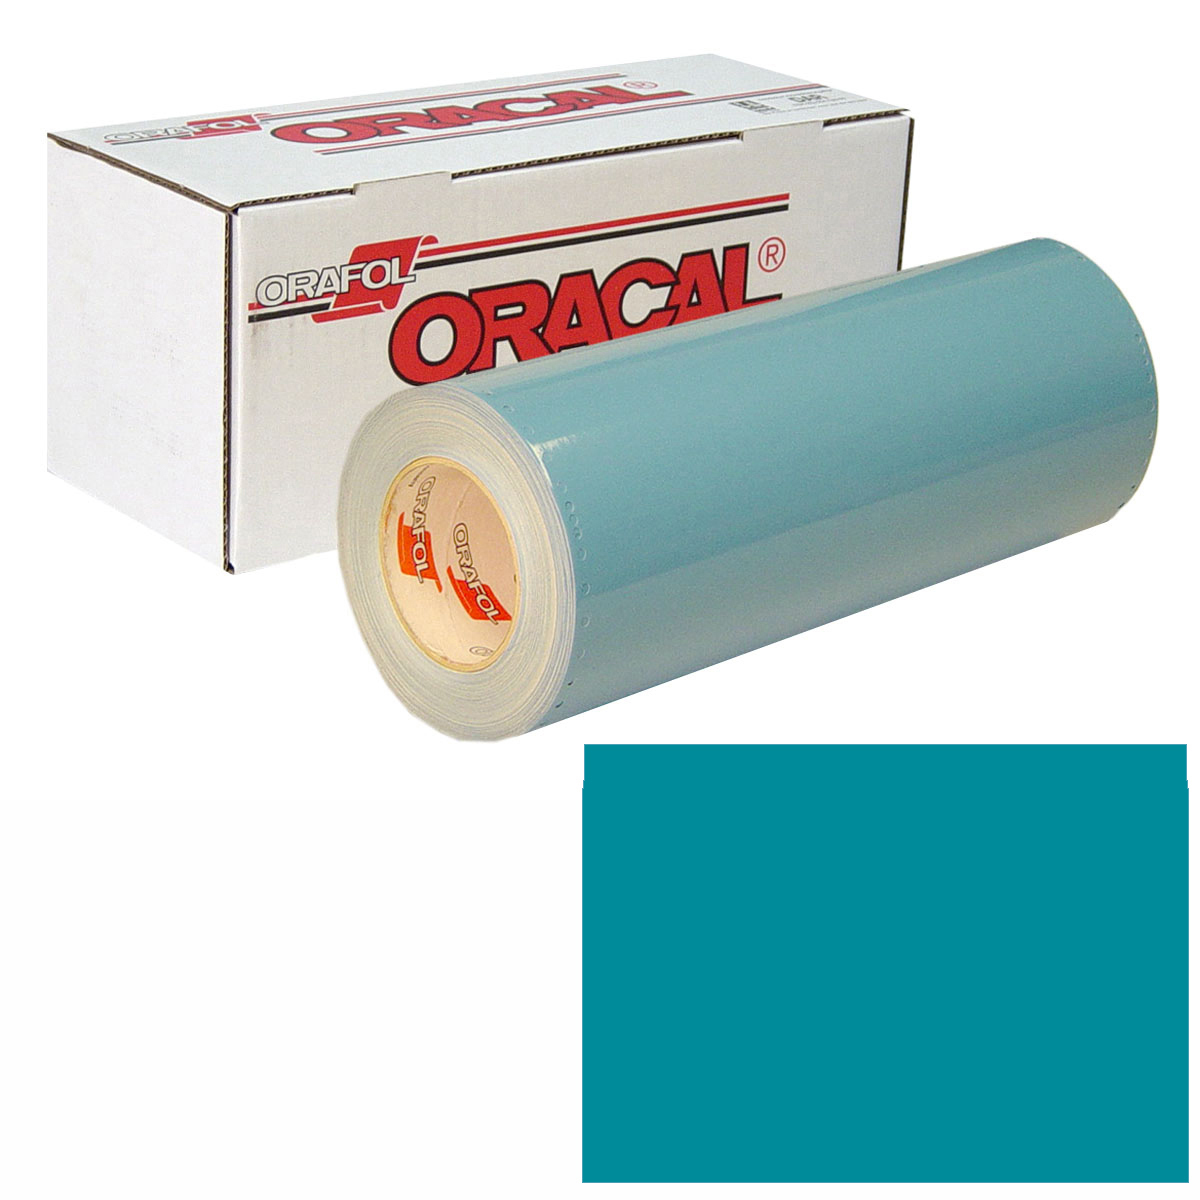 ORACAL 751 Unp 48in X 50yd 066 Turquoise Blue